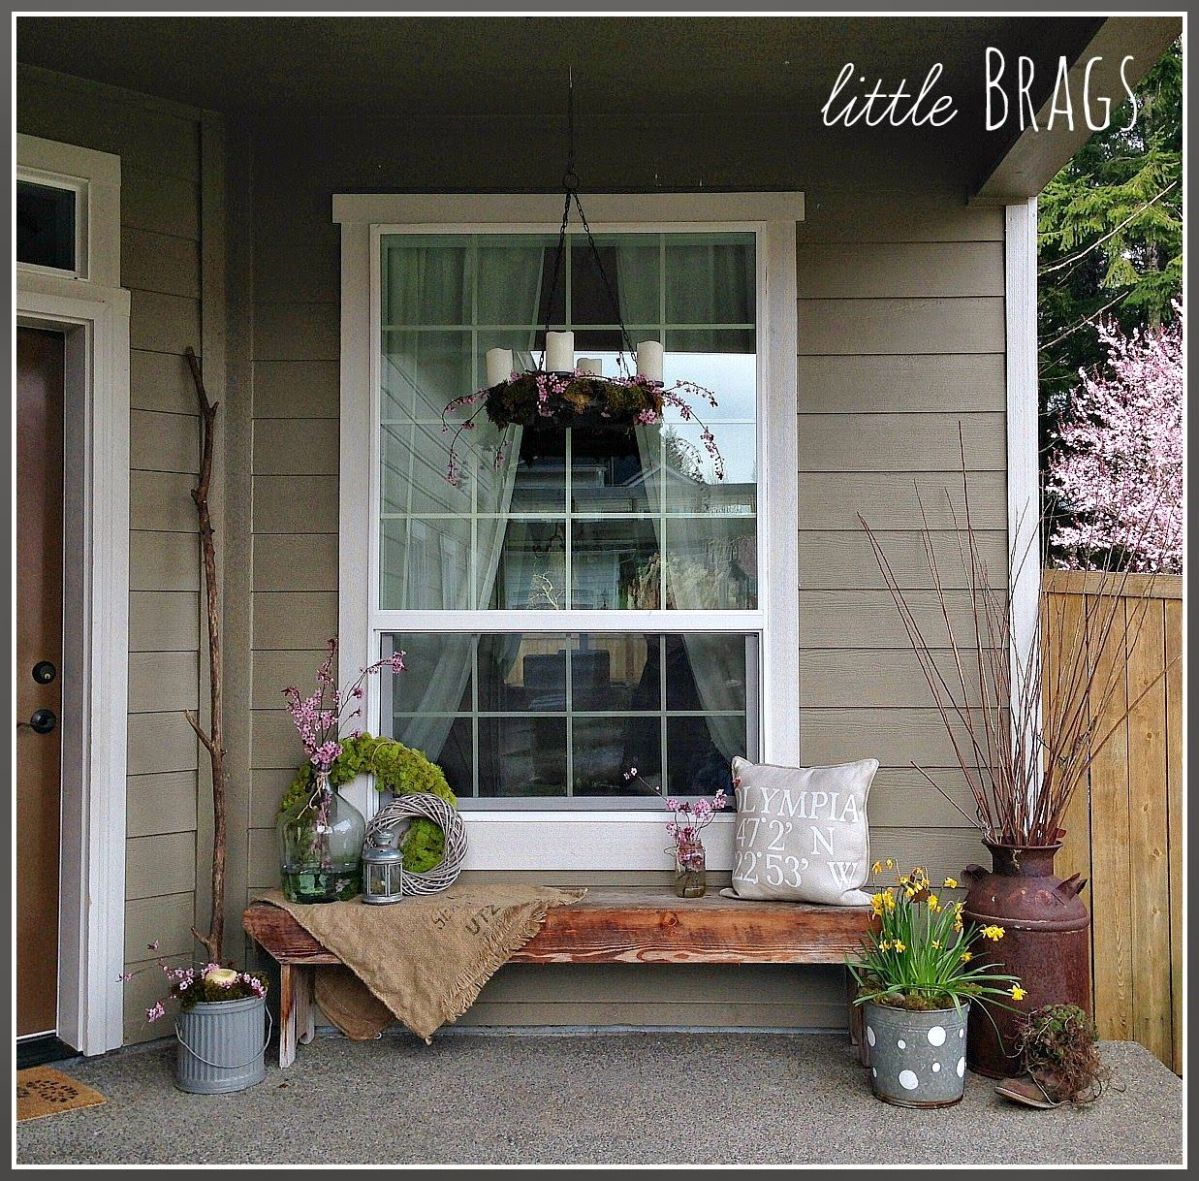 11 Remarkable Spring Porch Decor Ideas Adding Pretty Blooms To The ..